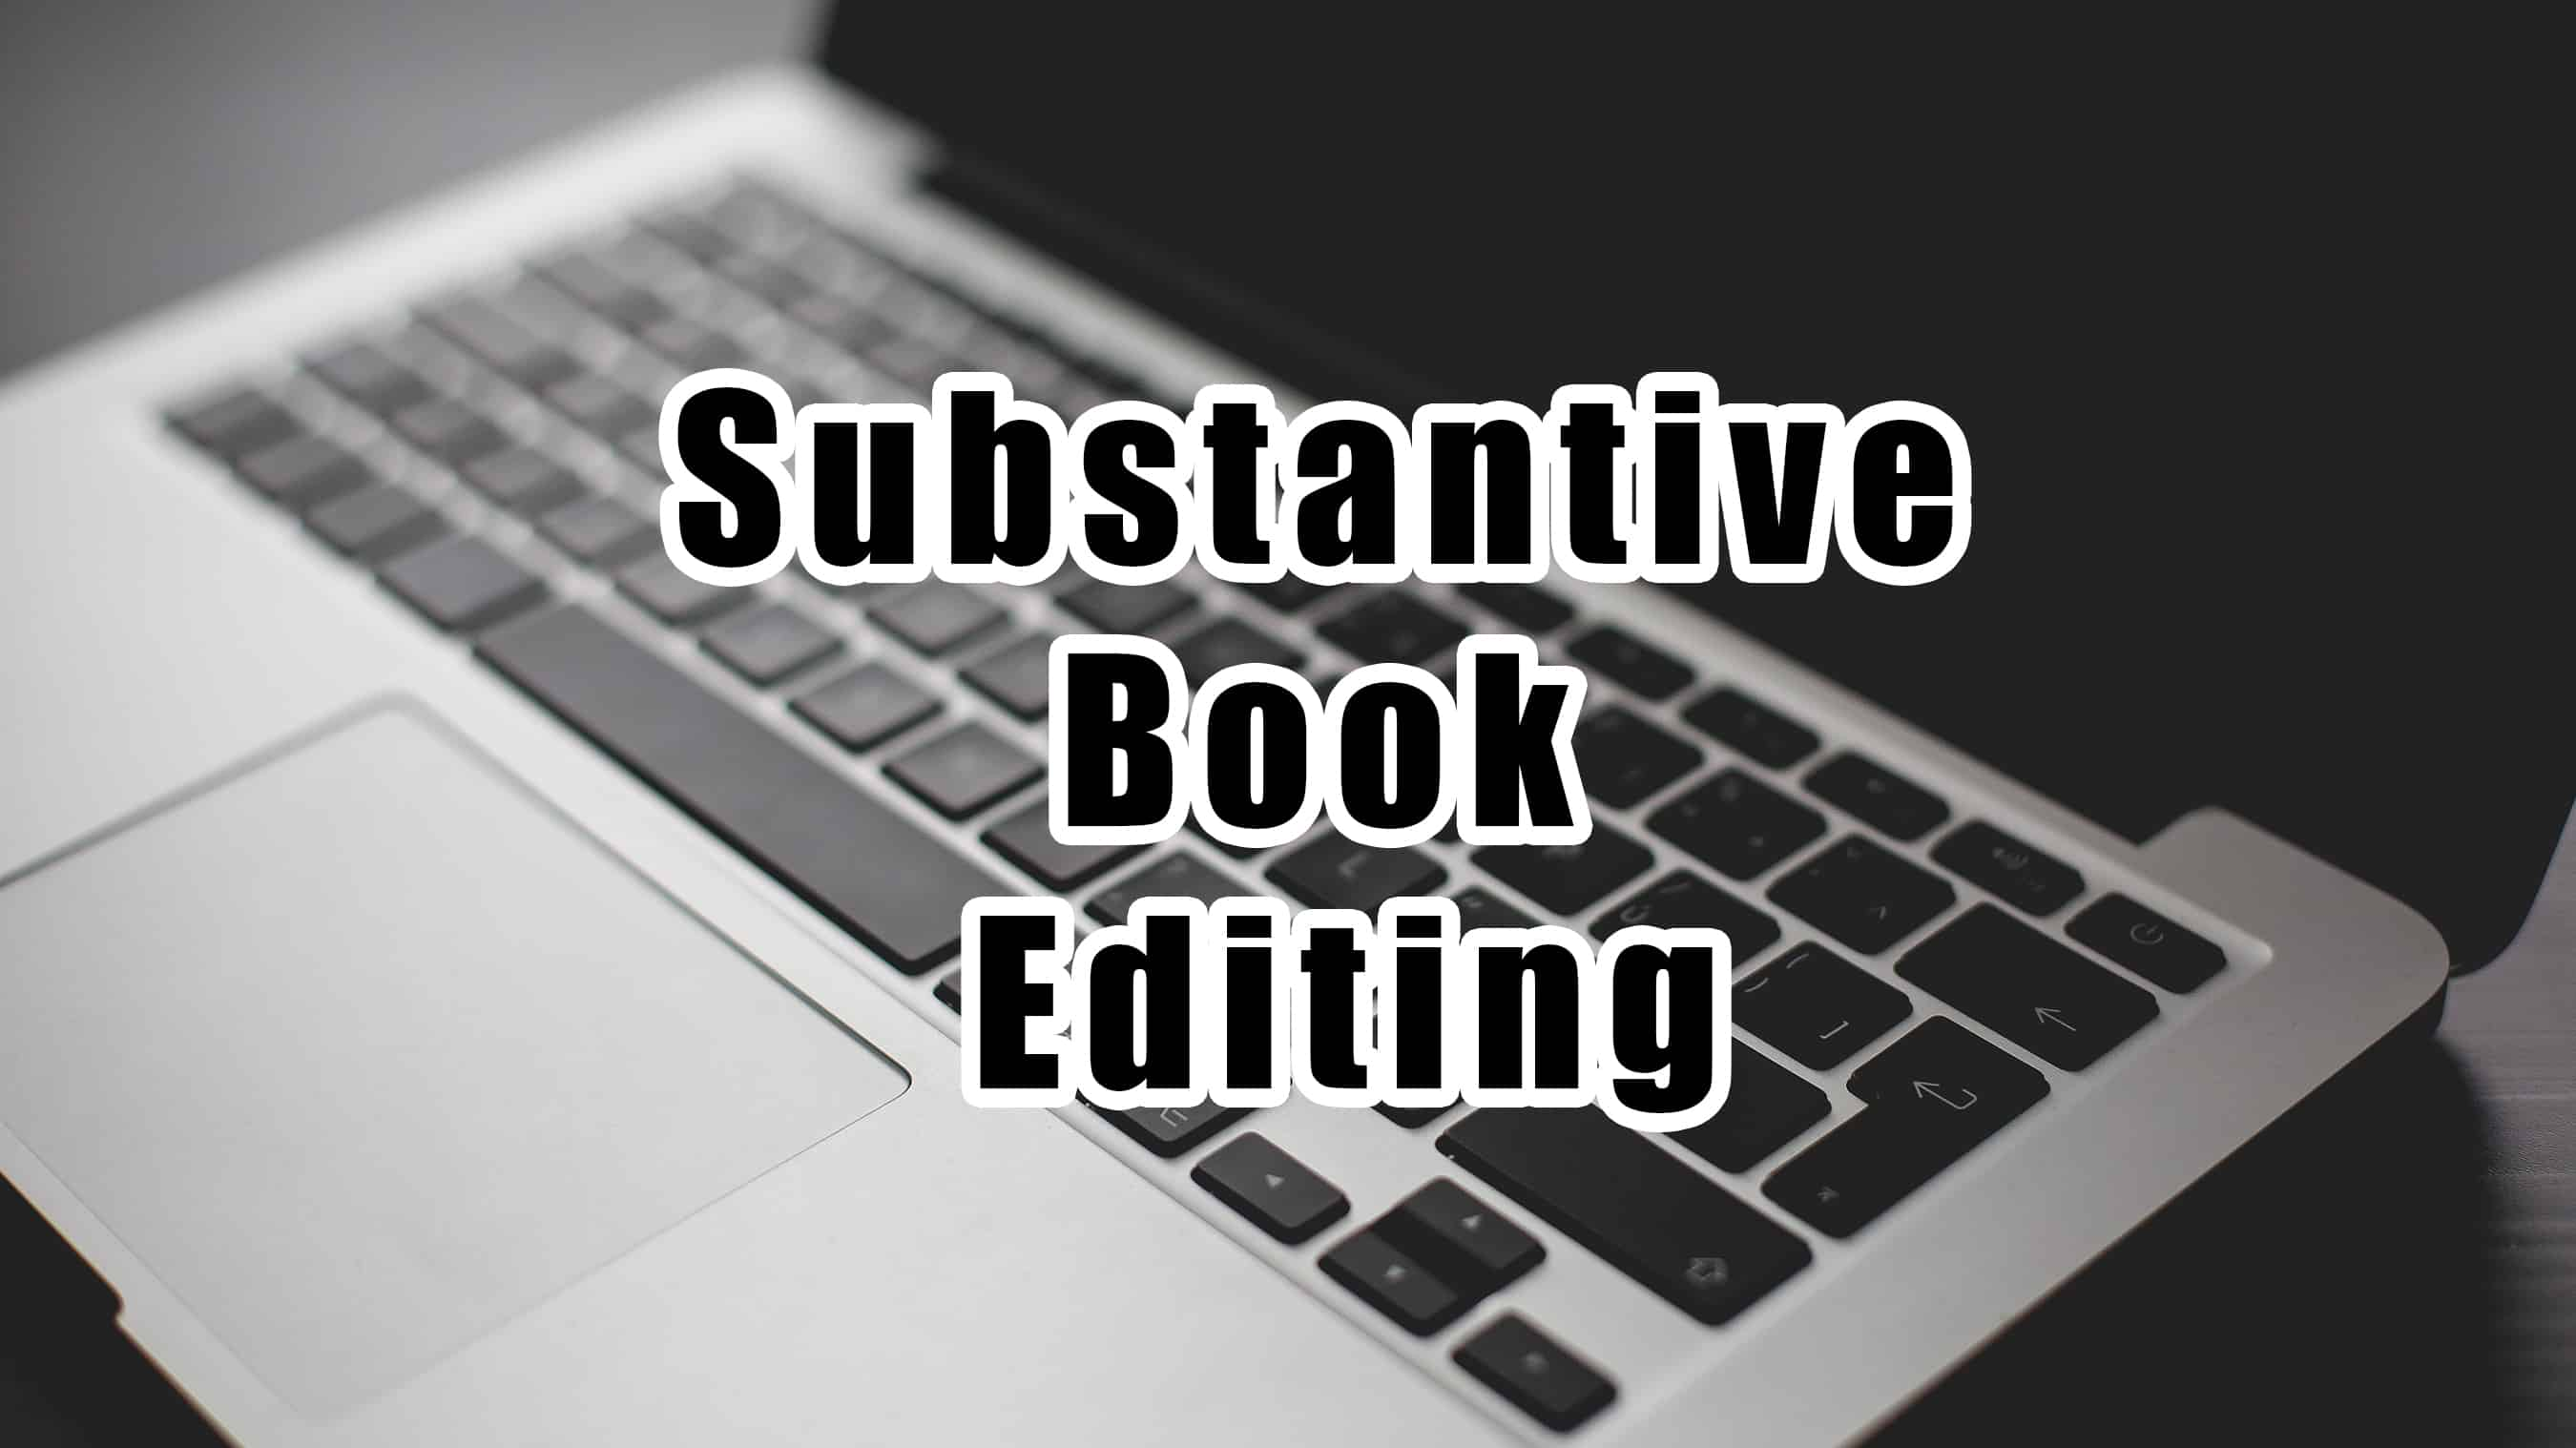 Substantive Book Editing – Episode 012